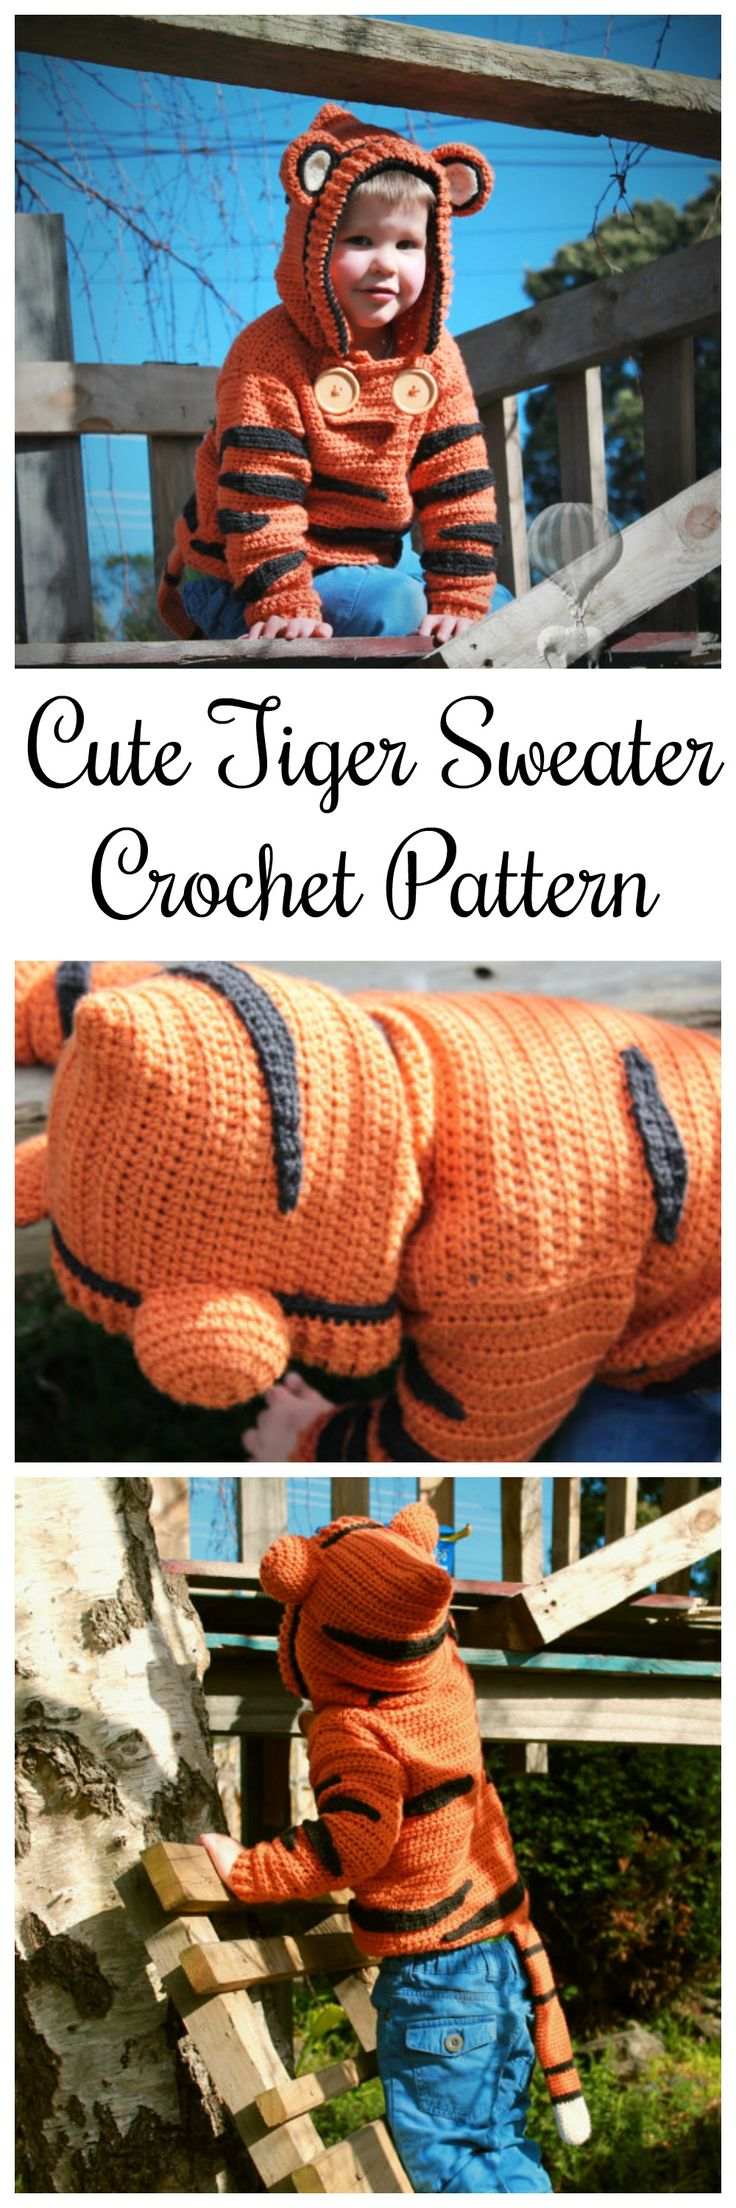 Cute Tiger Sweater Crochet Pattern | Instant Digital download #tiger #kids #ad #etsy #style #kidstyle #etsyseller